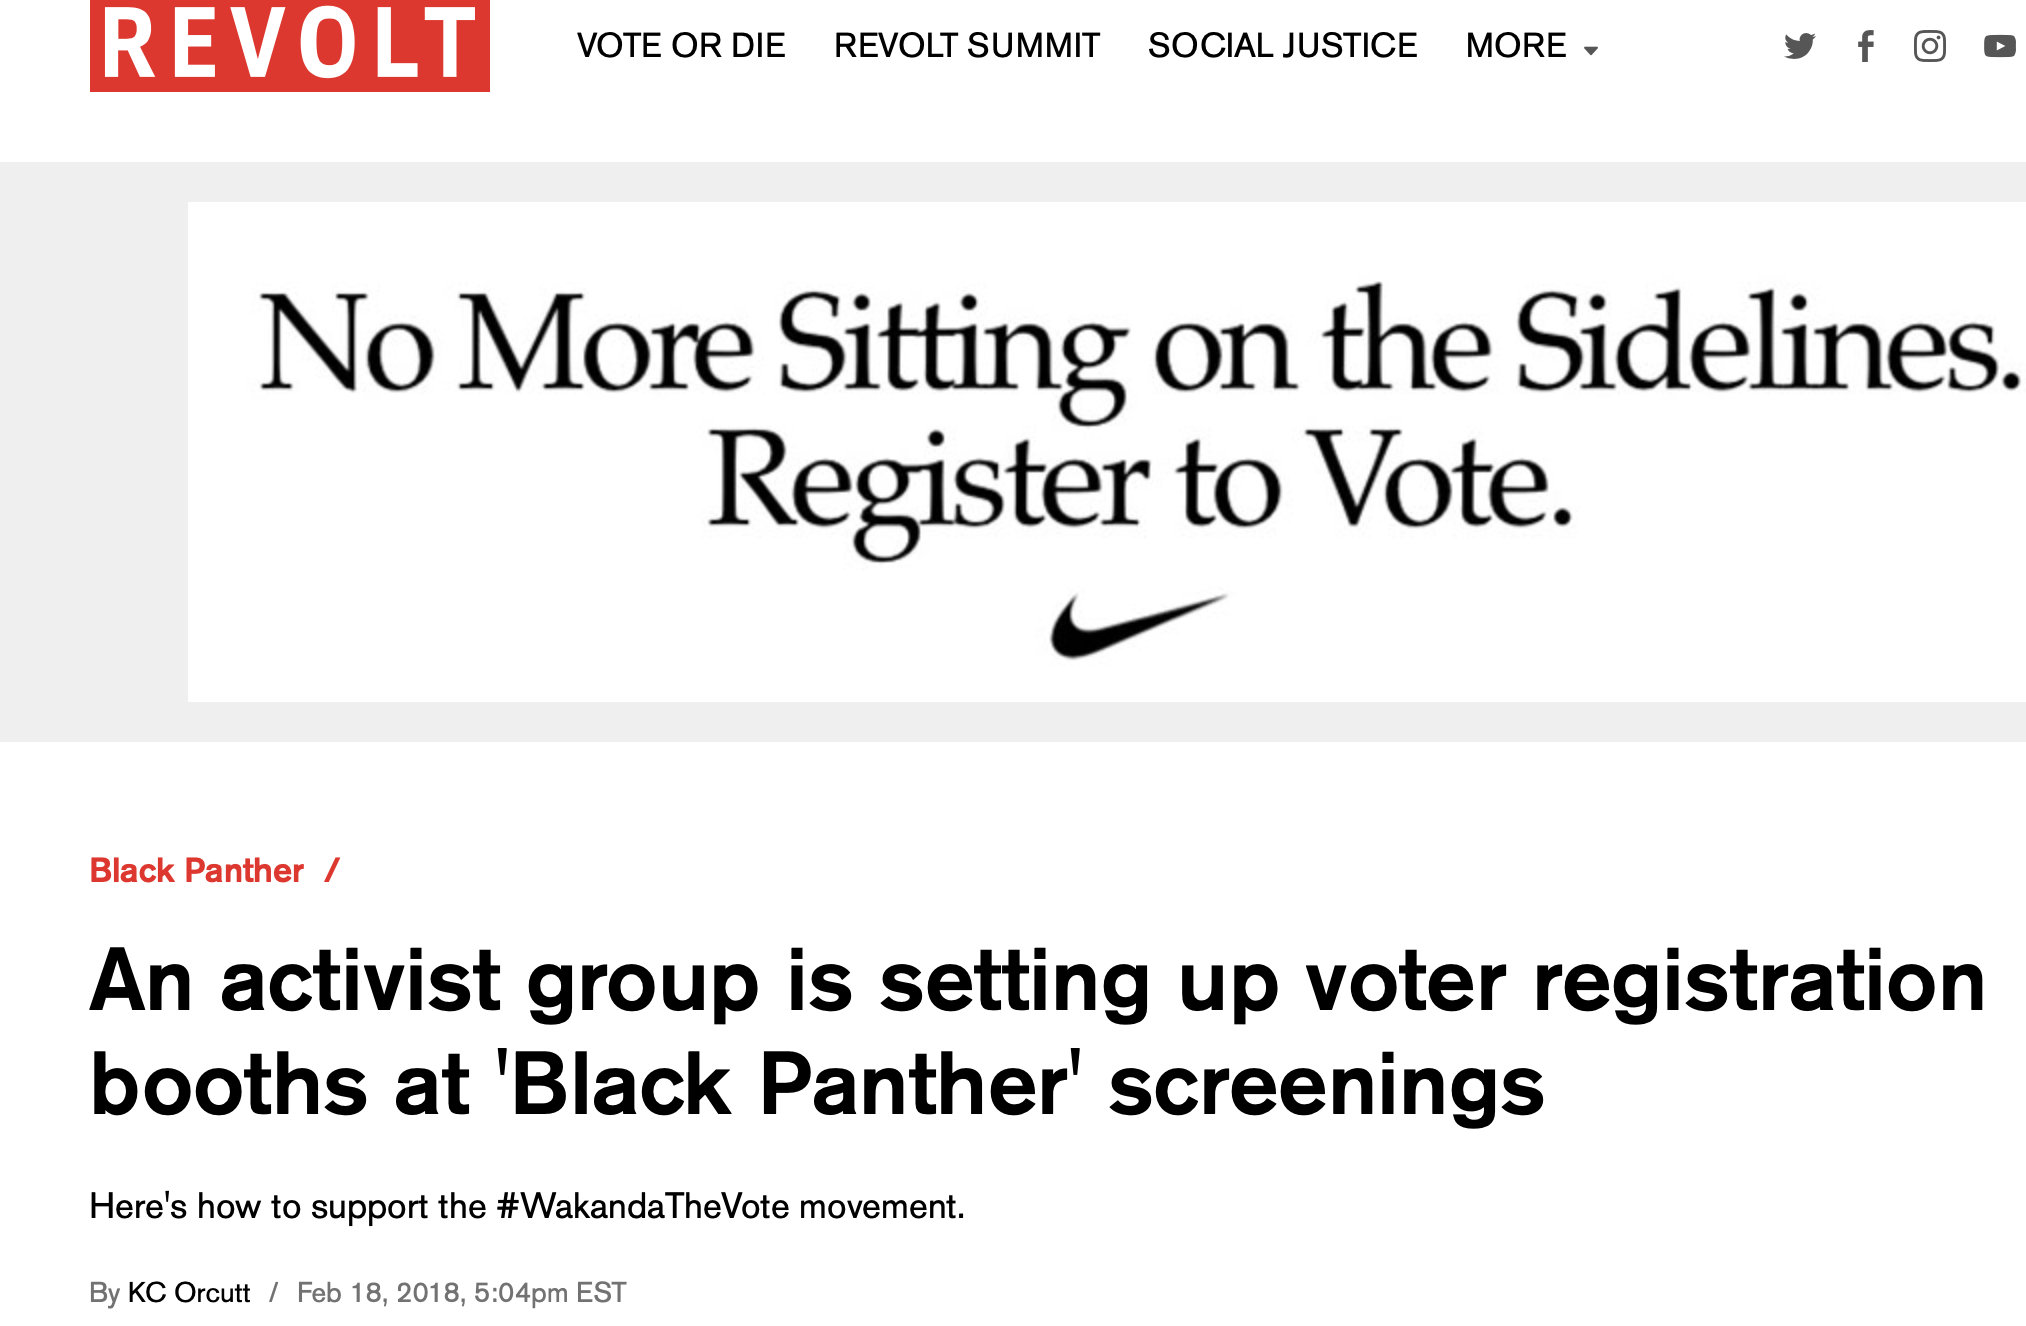 An activist group is setting up voter registration booths at 'Black Panther' screenings